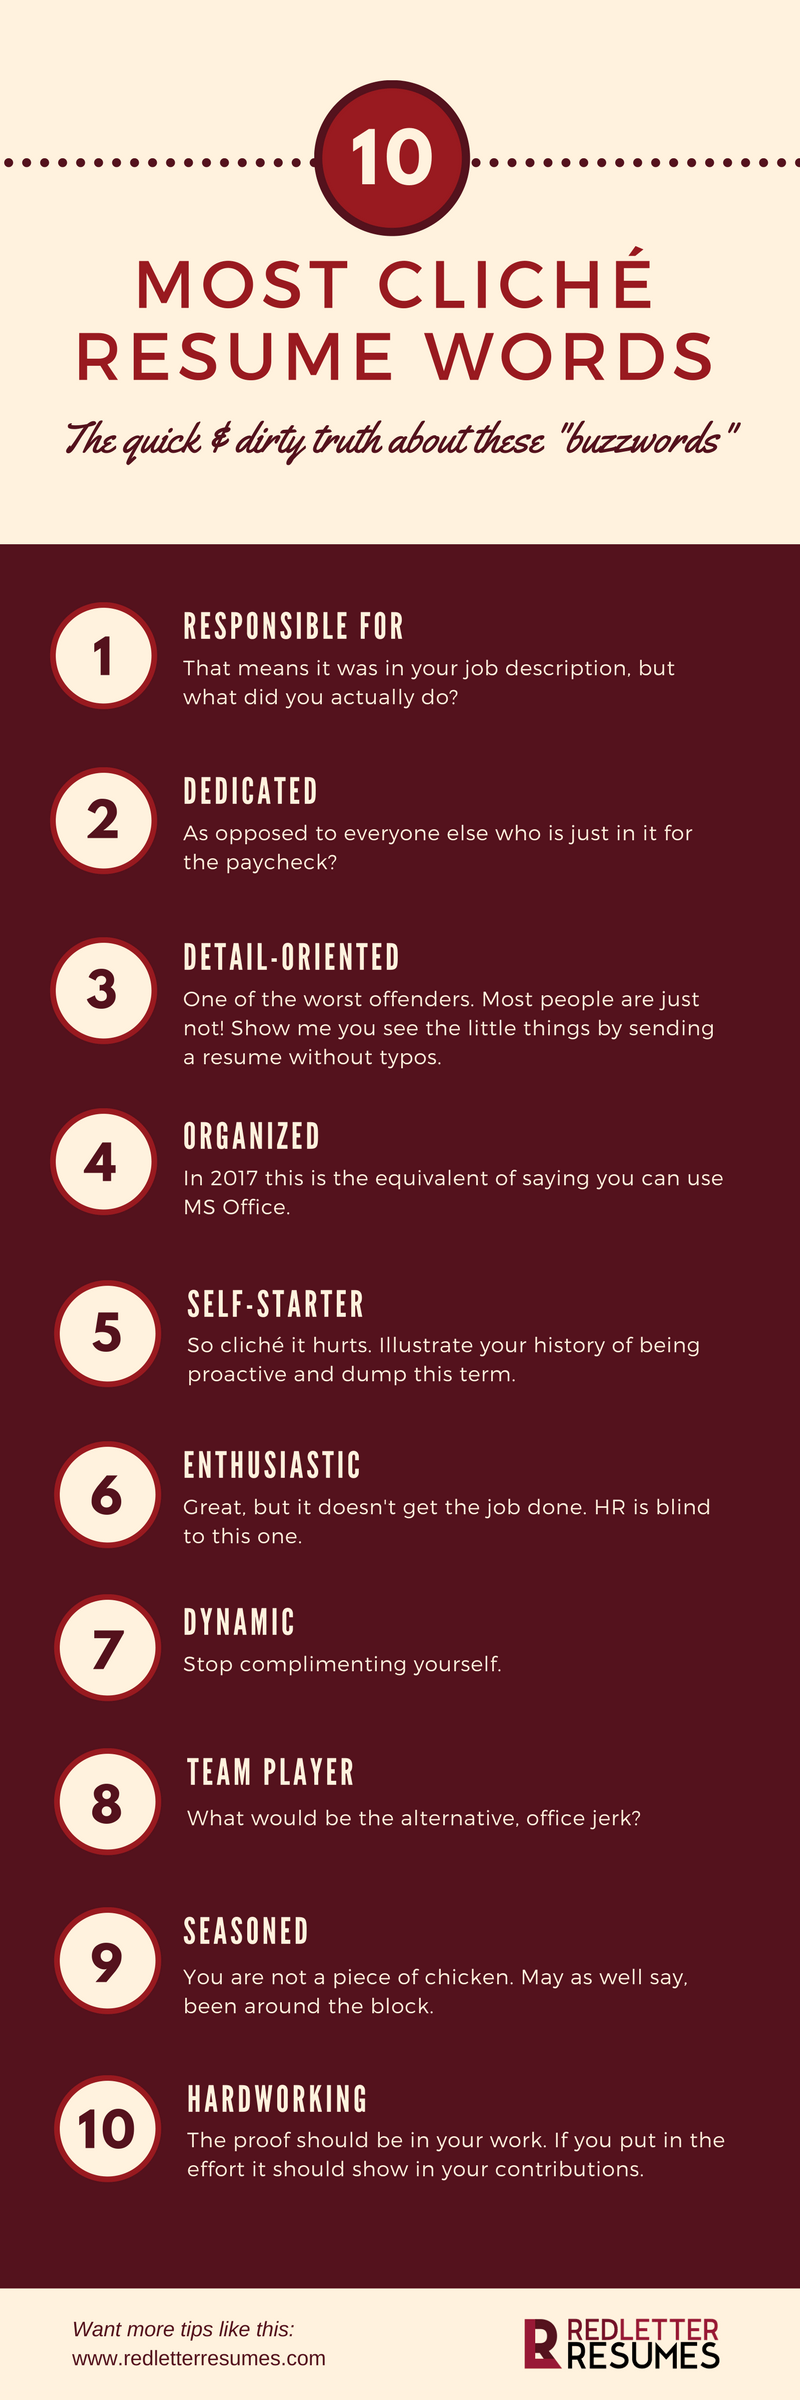 The Most Cliché Resume Phrases 2017 Infographic